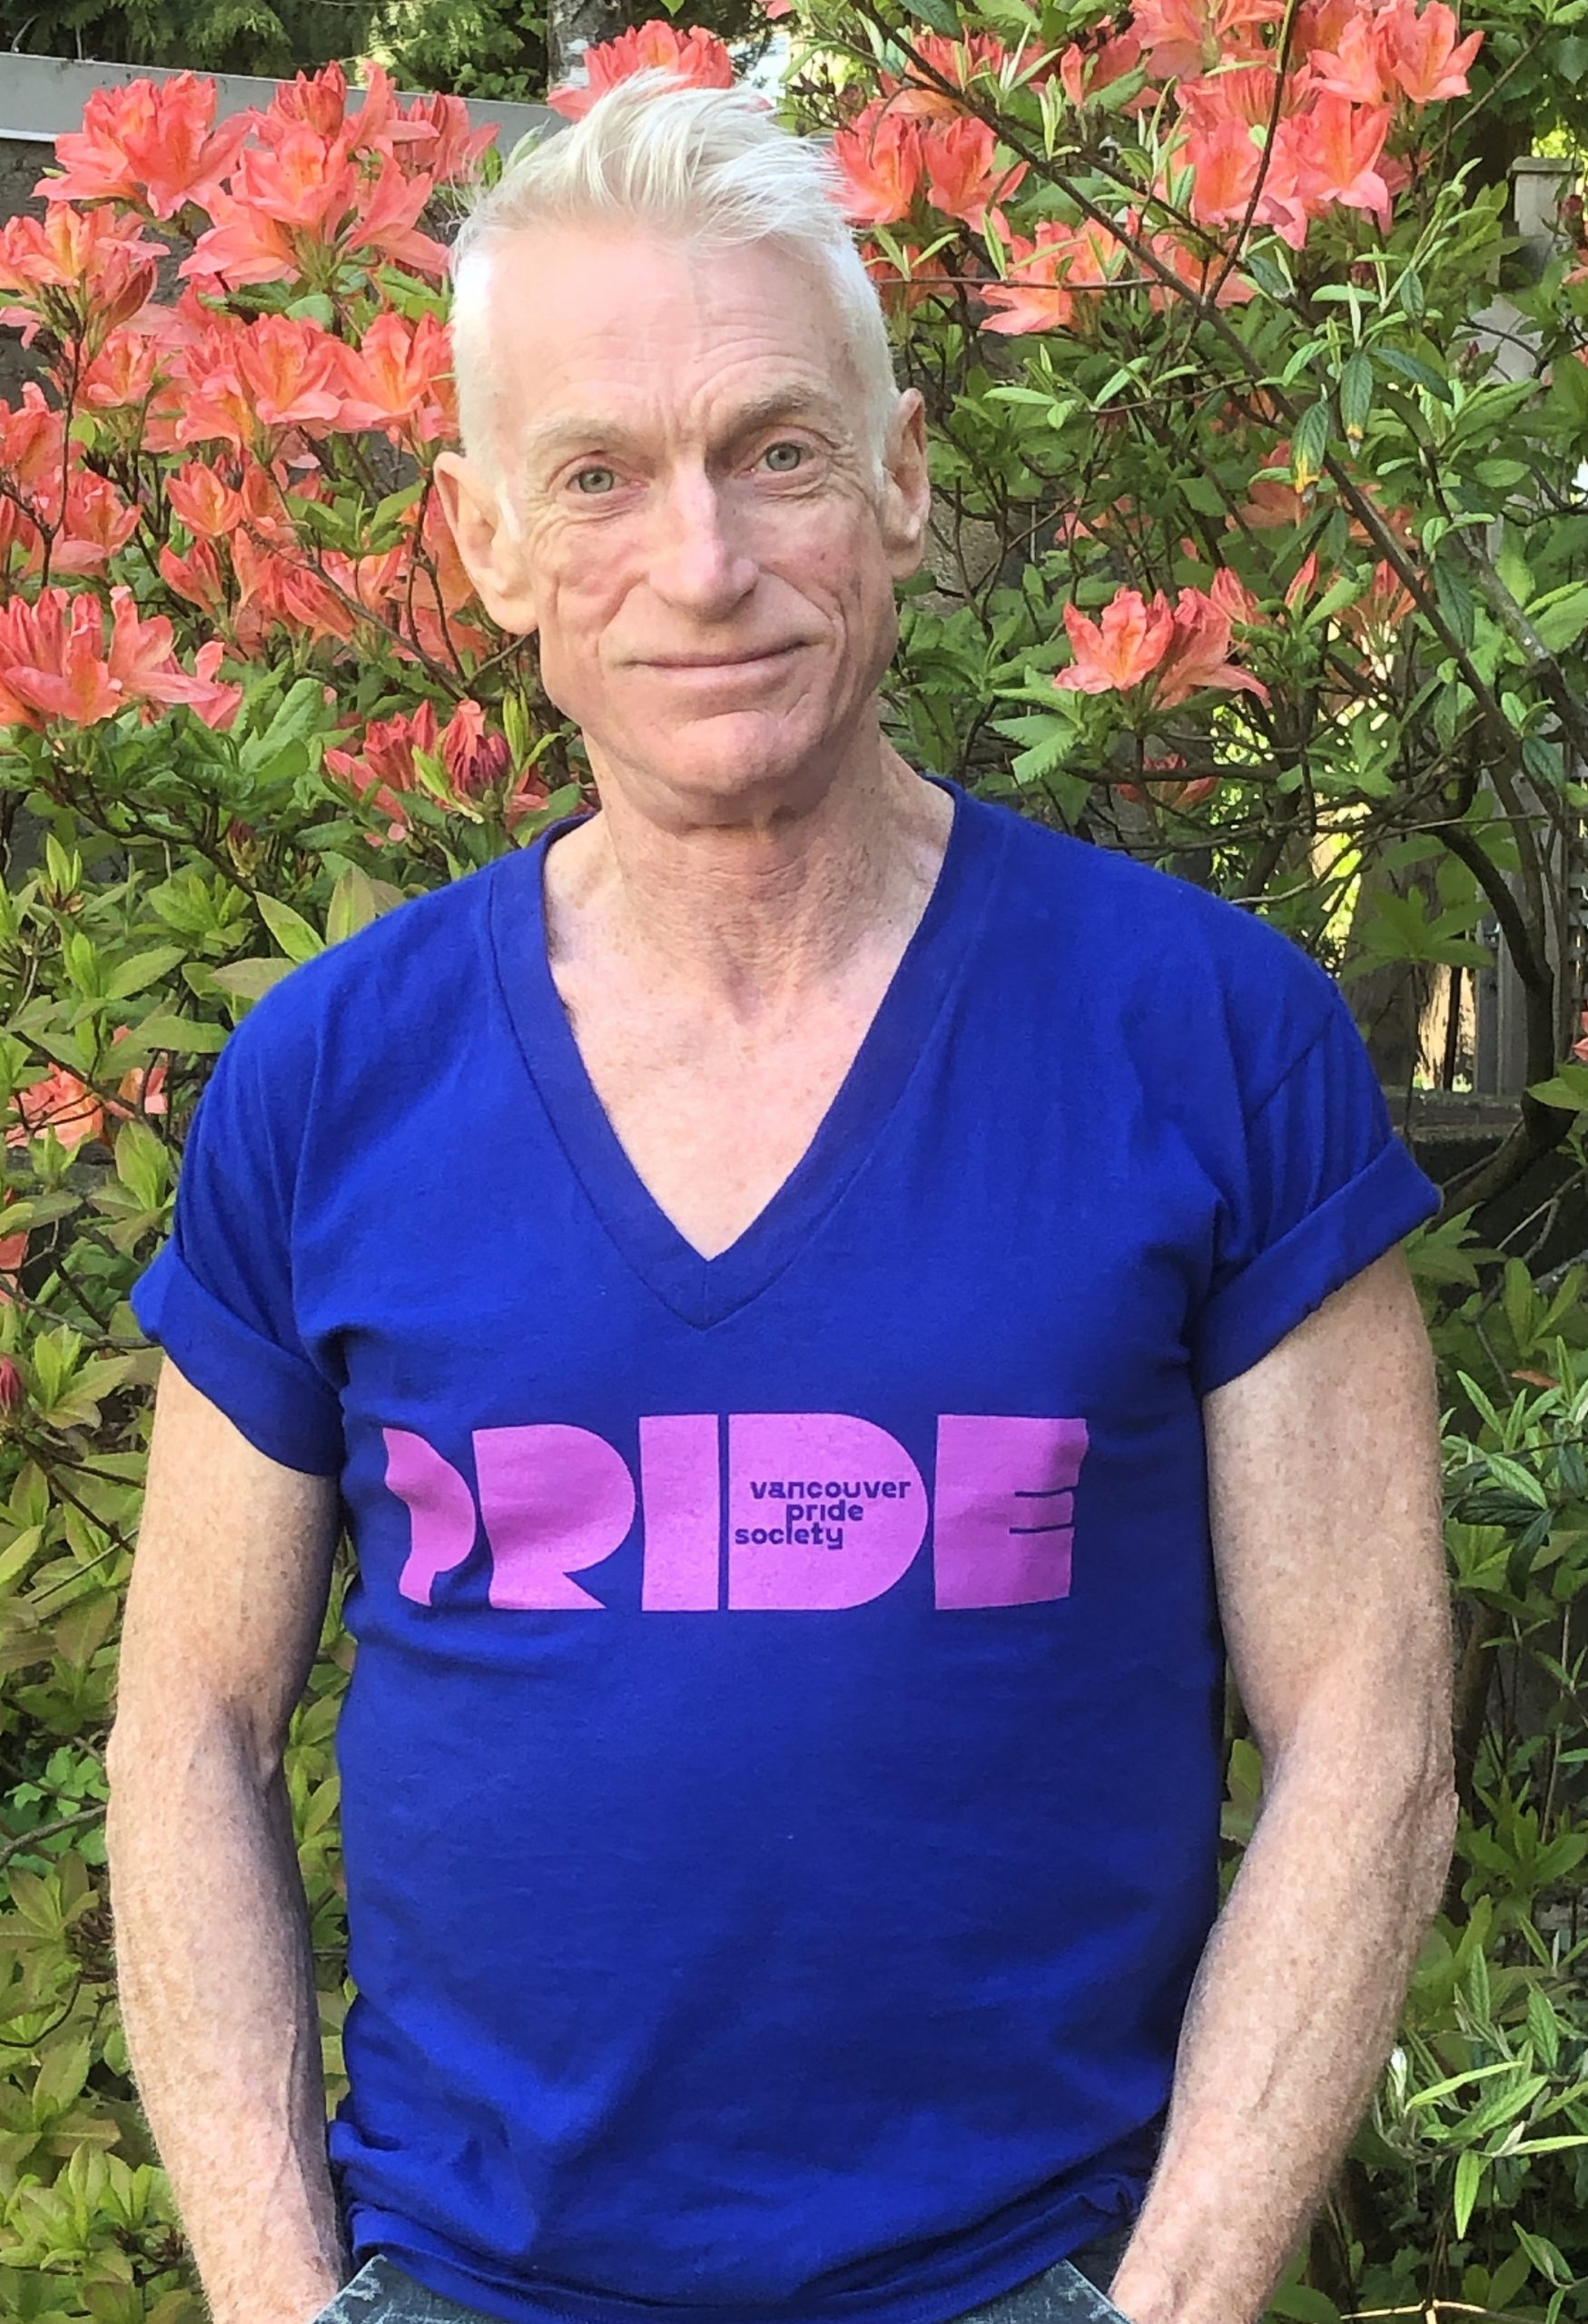 John stands in front of a pink flower bush and stares at the camera. He has short grey hair, and his armsare by his side. He is wearing a dark blue t-shirt with a purple Vancouver Pride logo on it